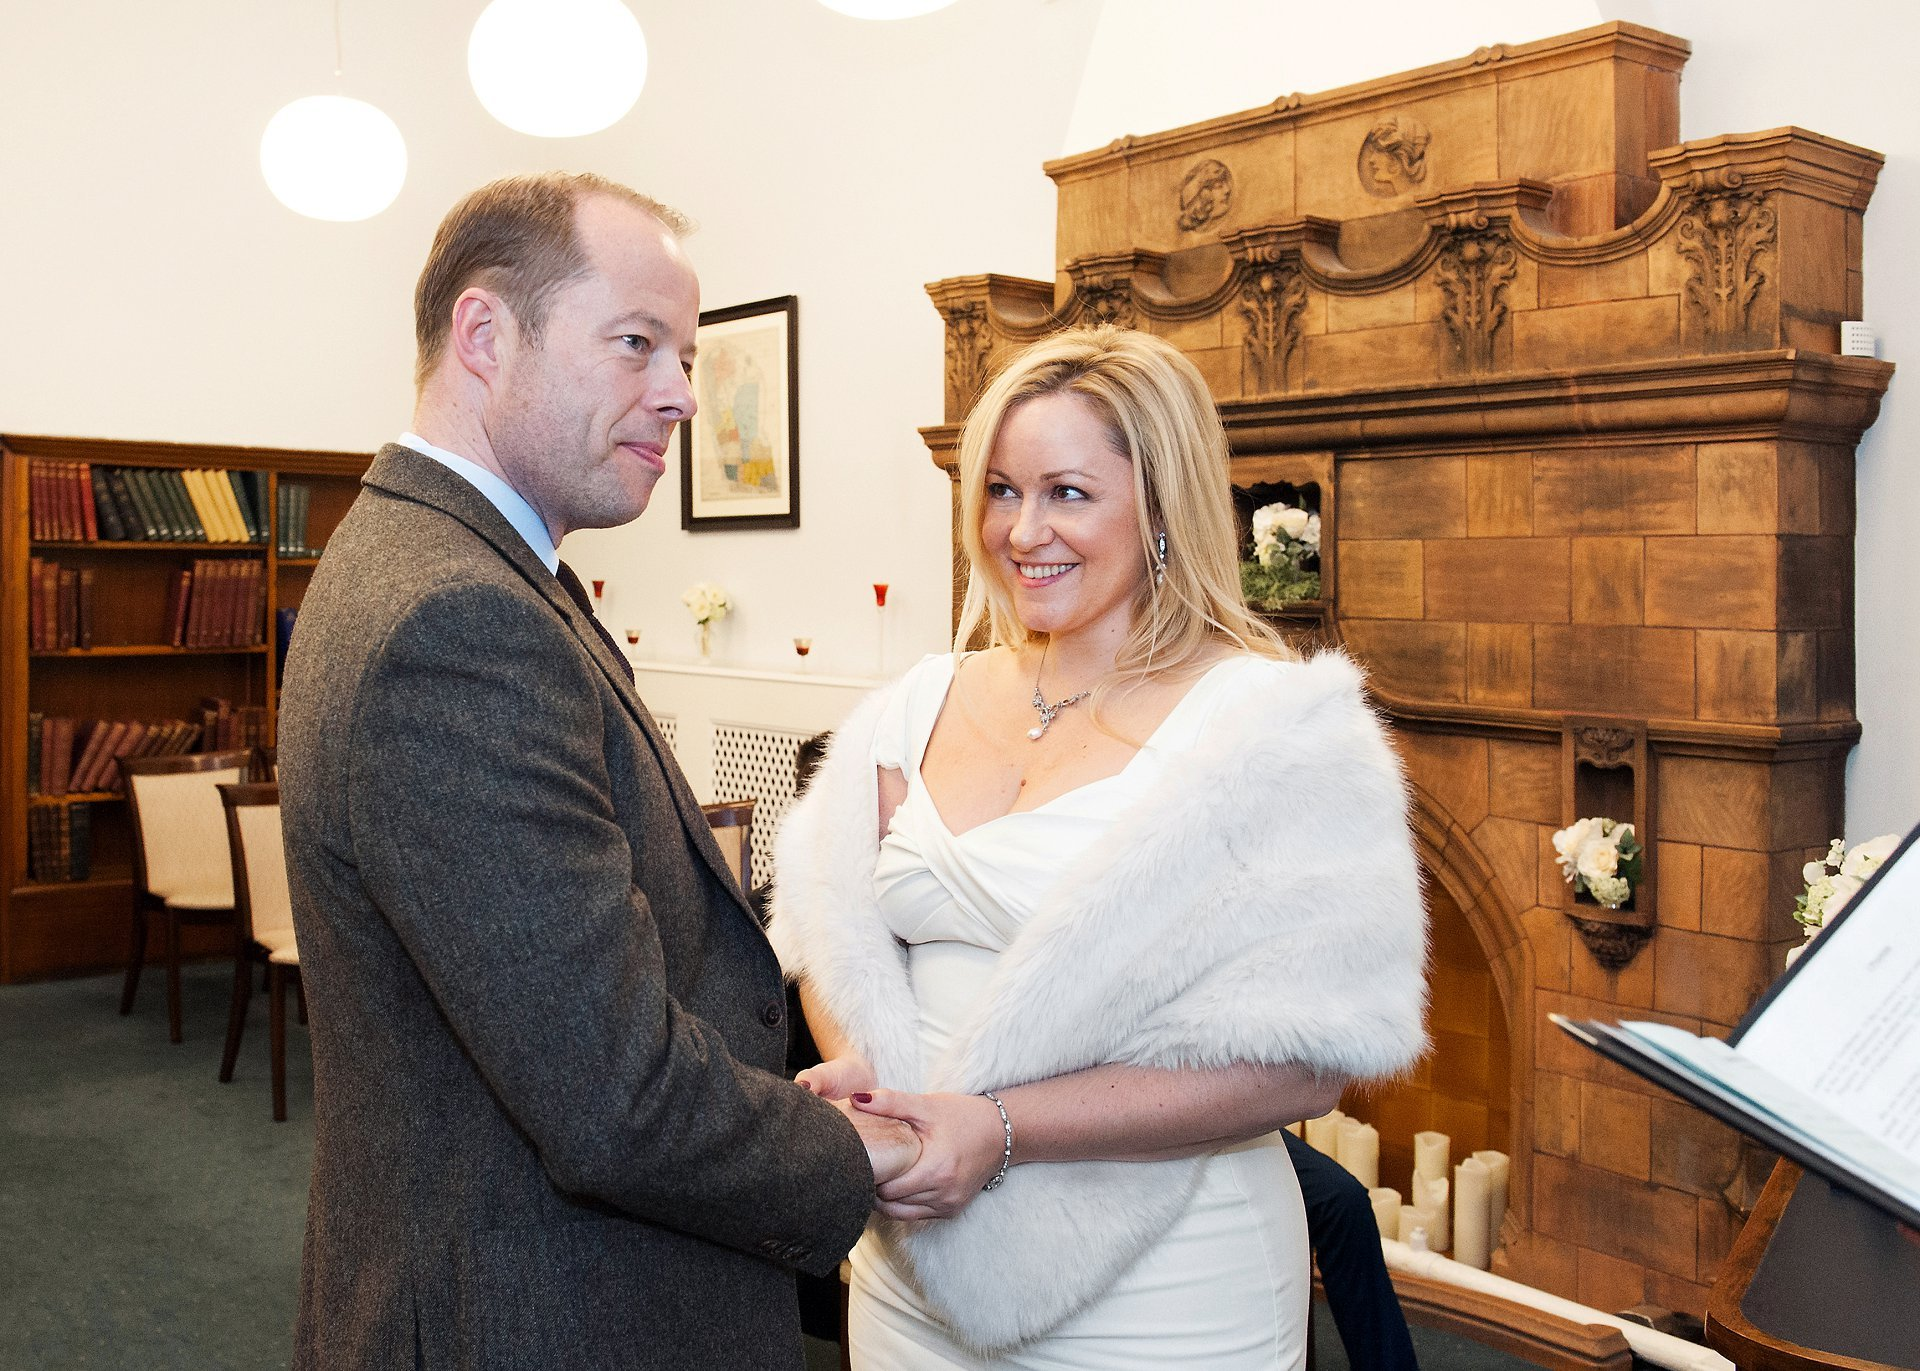 Westminster Register Office Christmas wedding in the Marylebone Room photographed by Westminster specialist Emma Duggan her showing a bride and groom exchanging vows during their civil ceremony